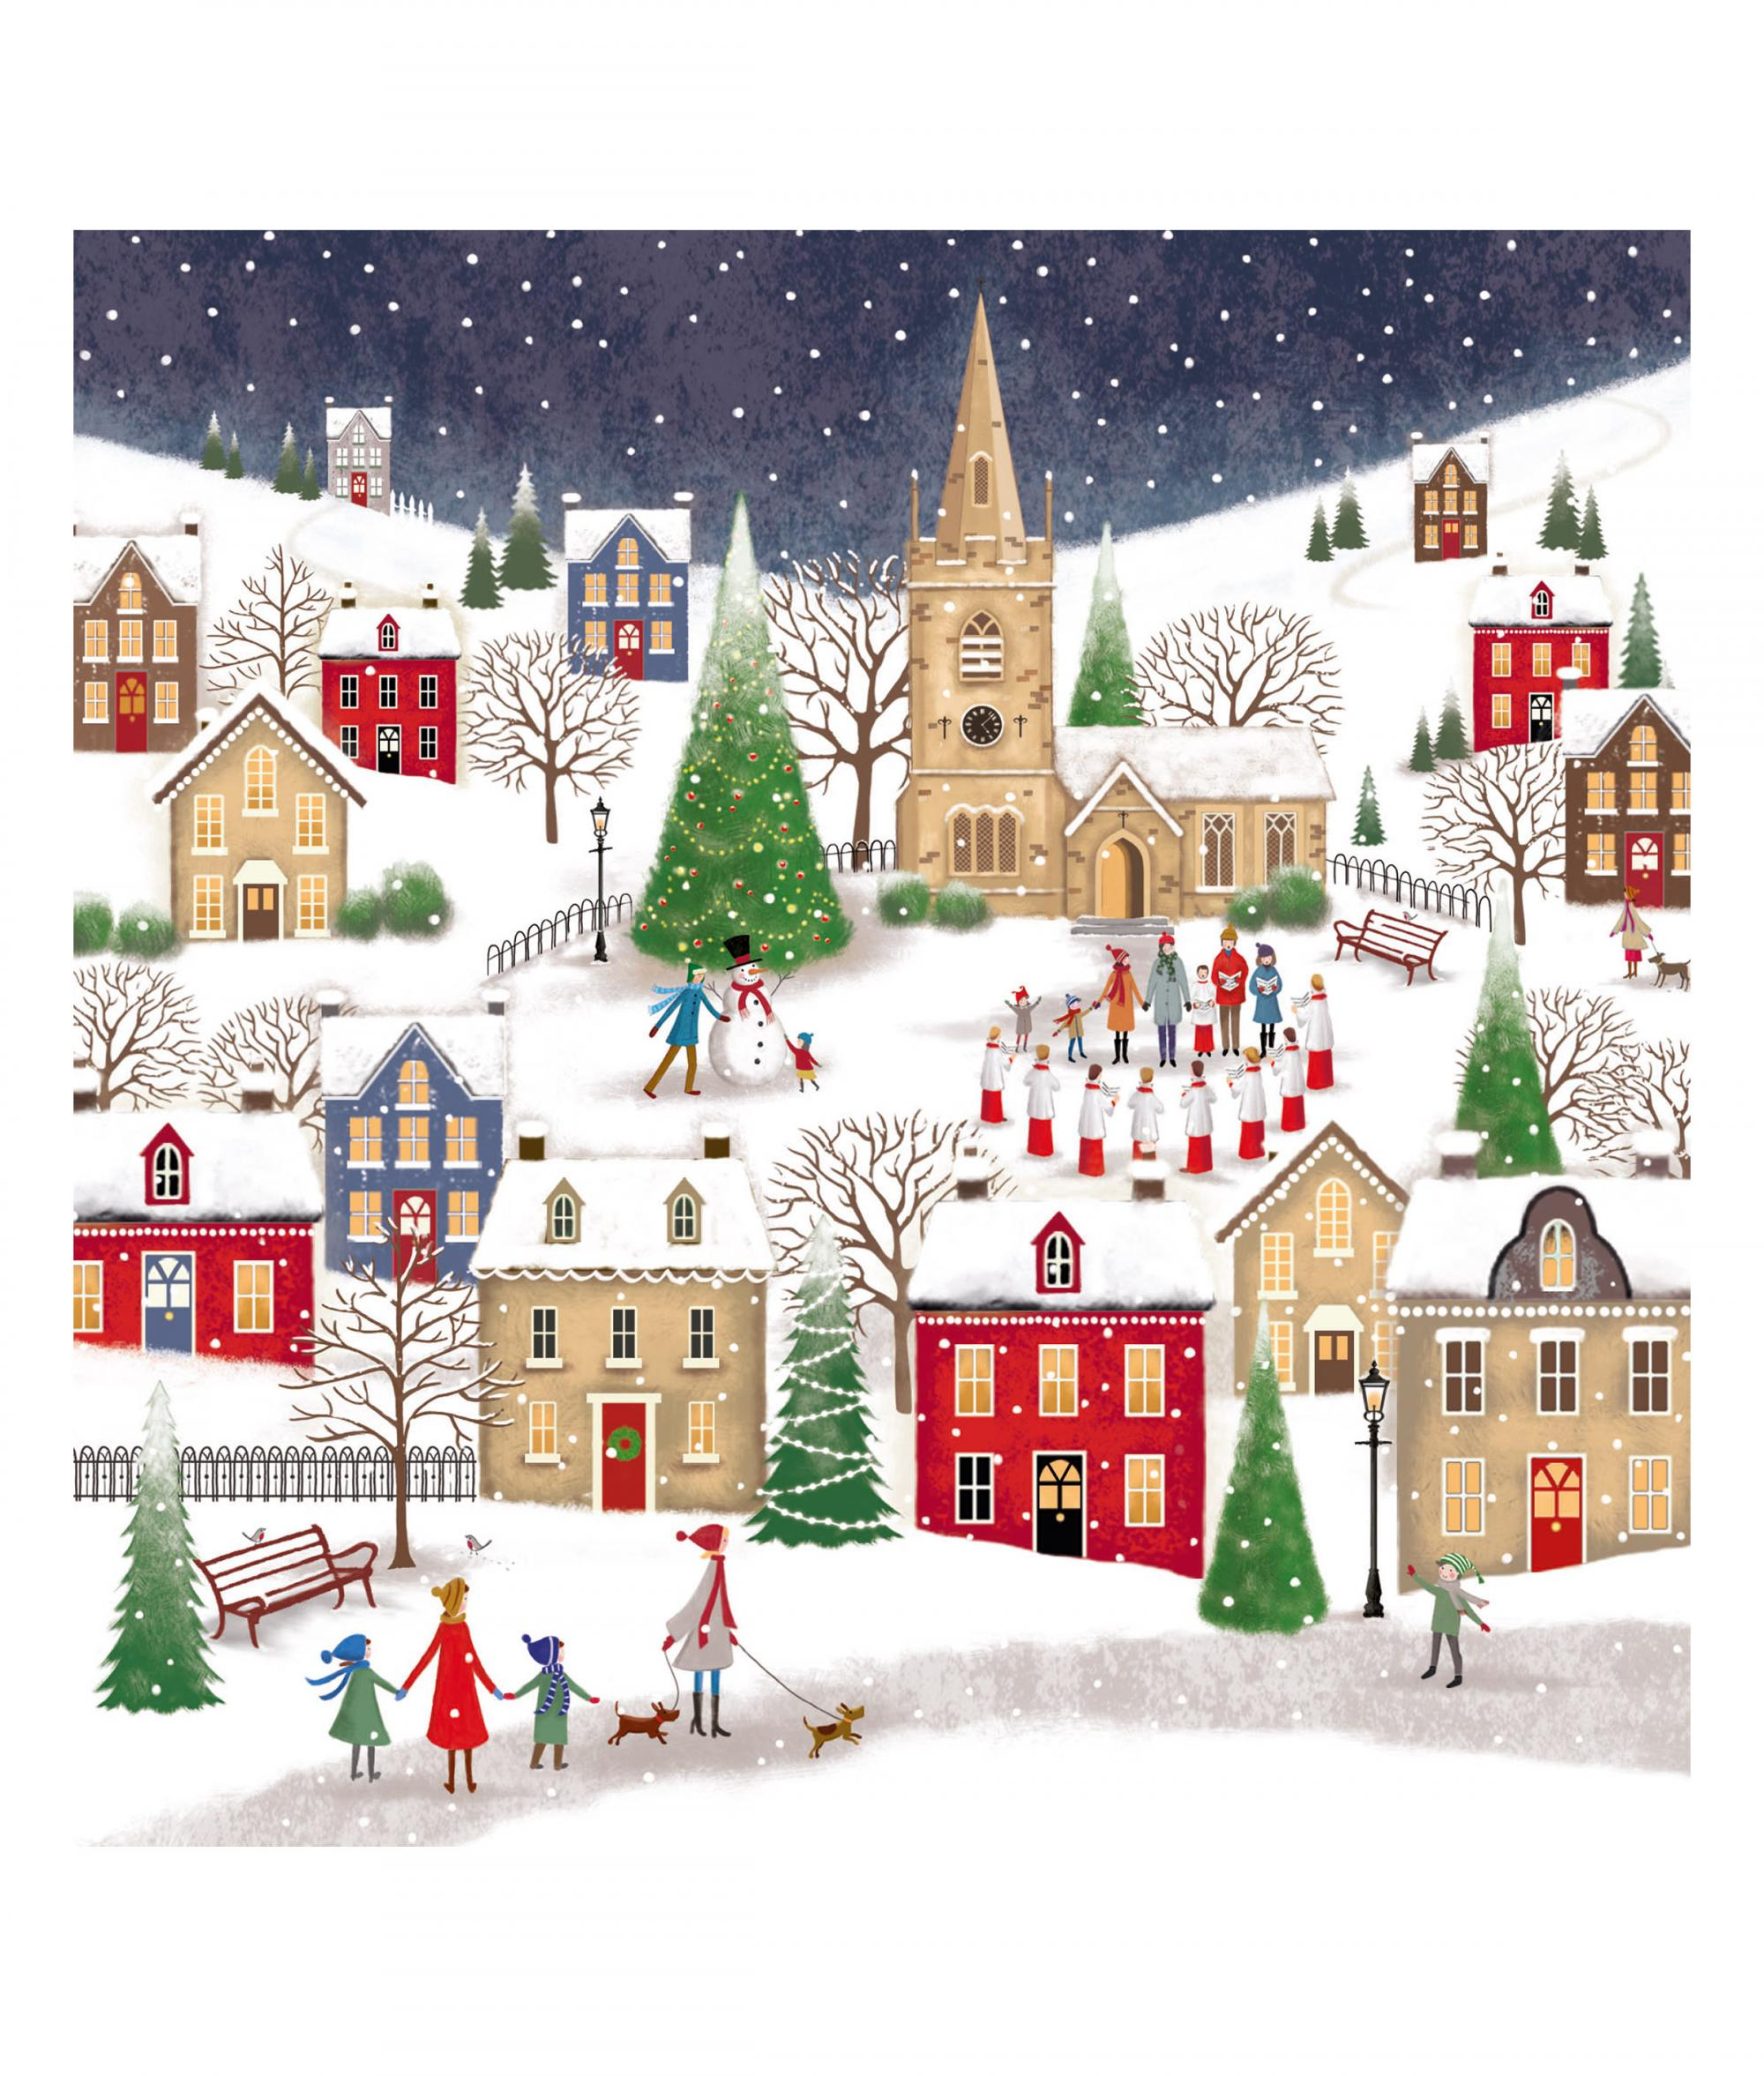 Village at Christmas Card - Pack of 10 | Cancer Research UK Online ...